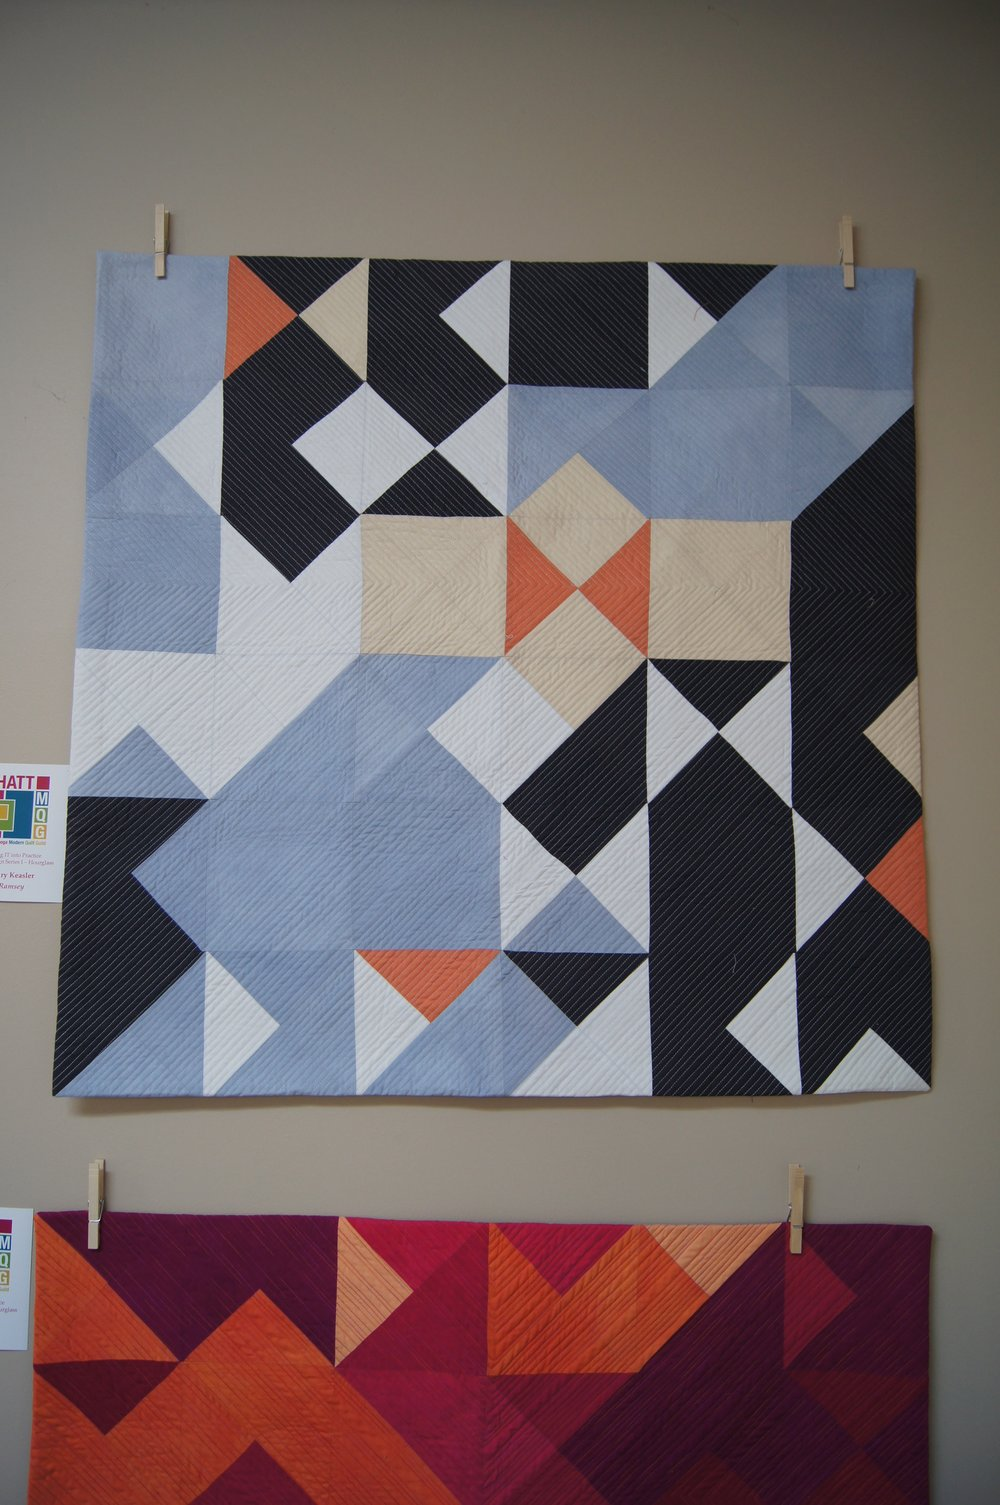 Quilt by Mary Keasler